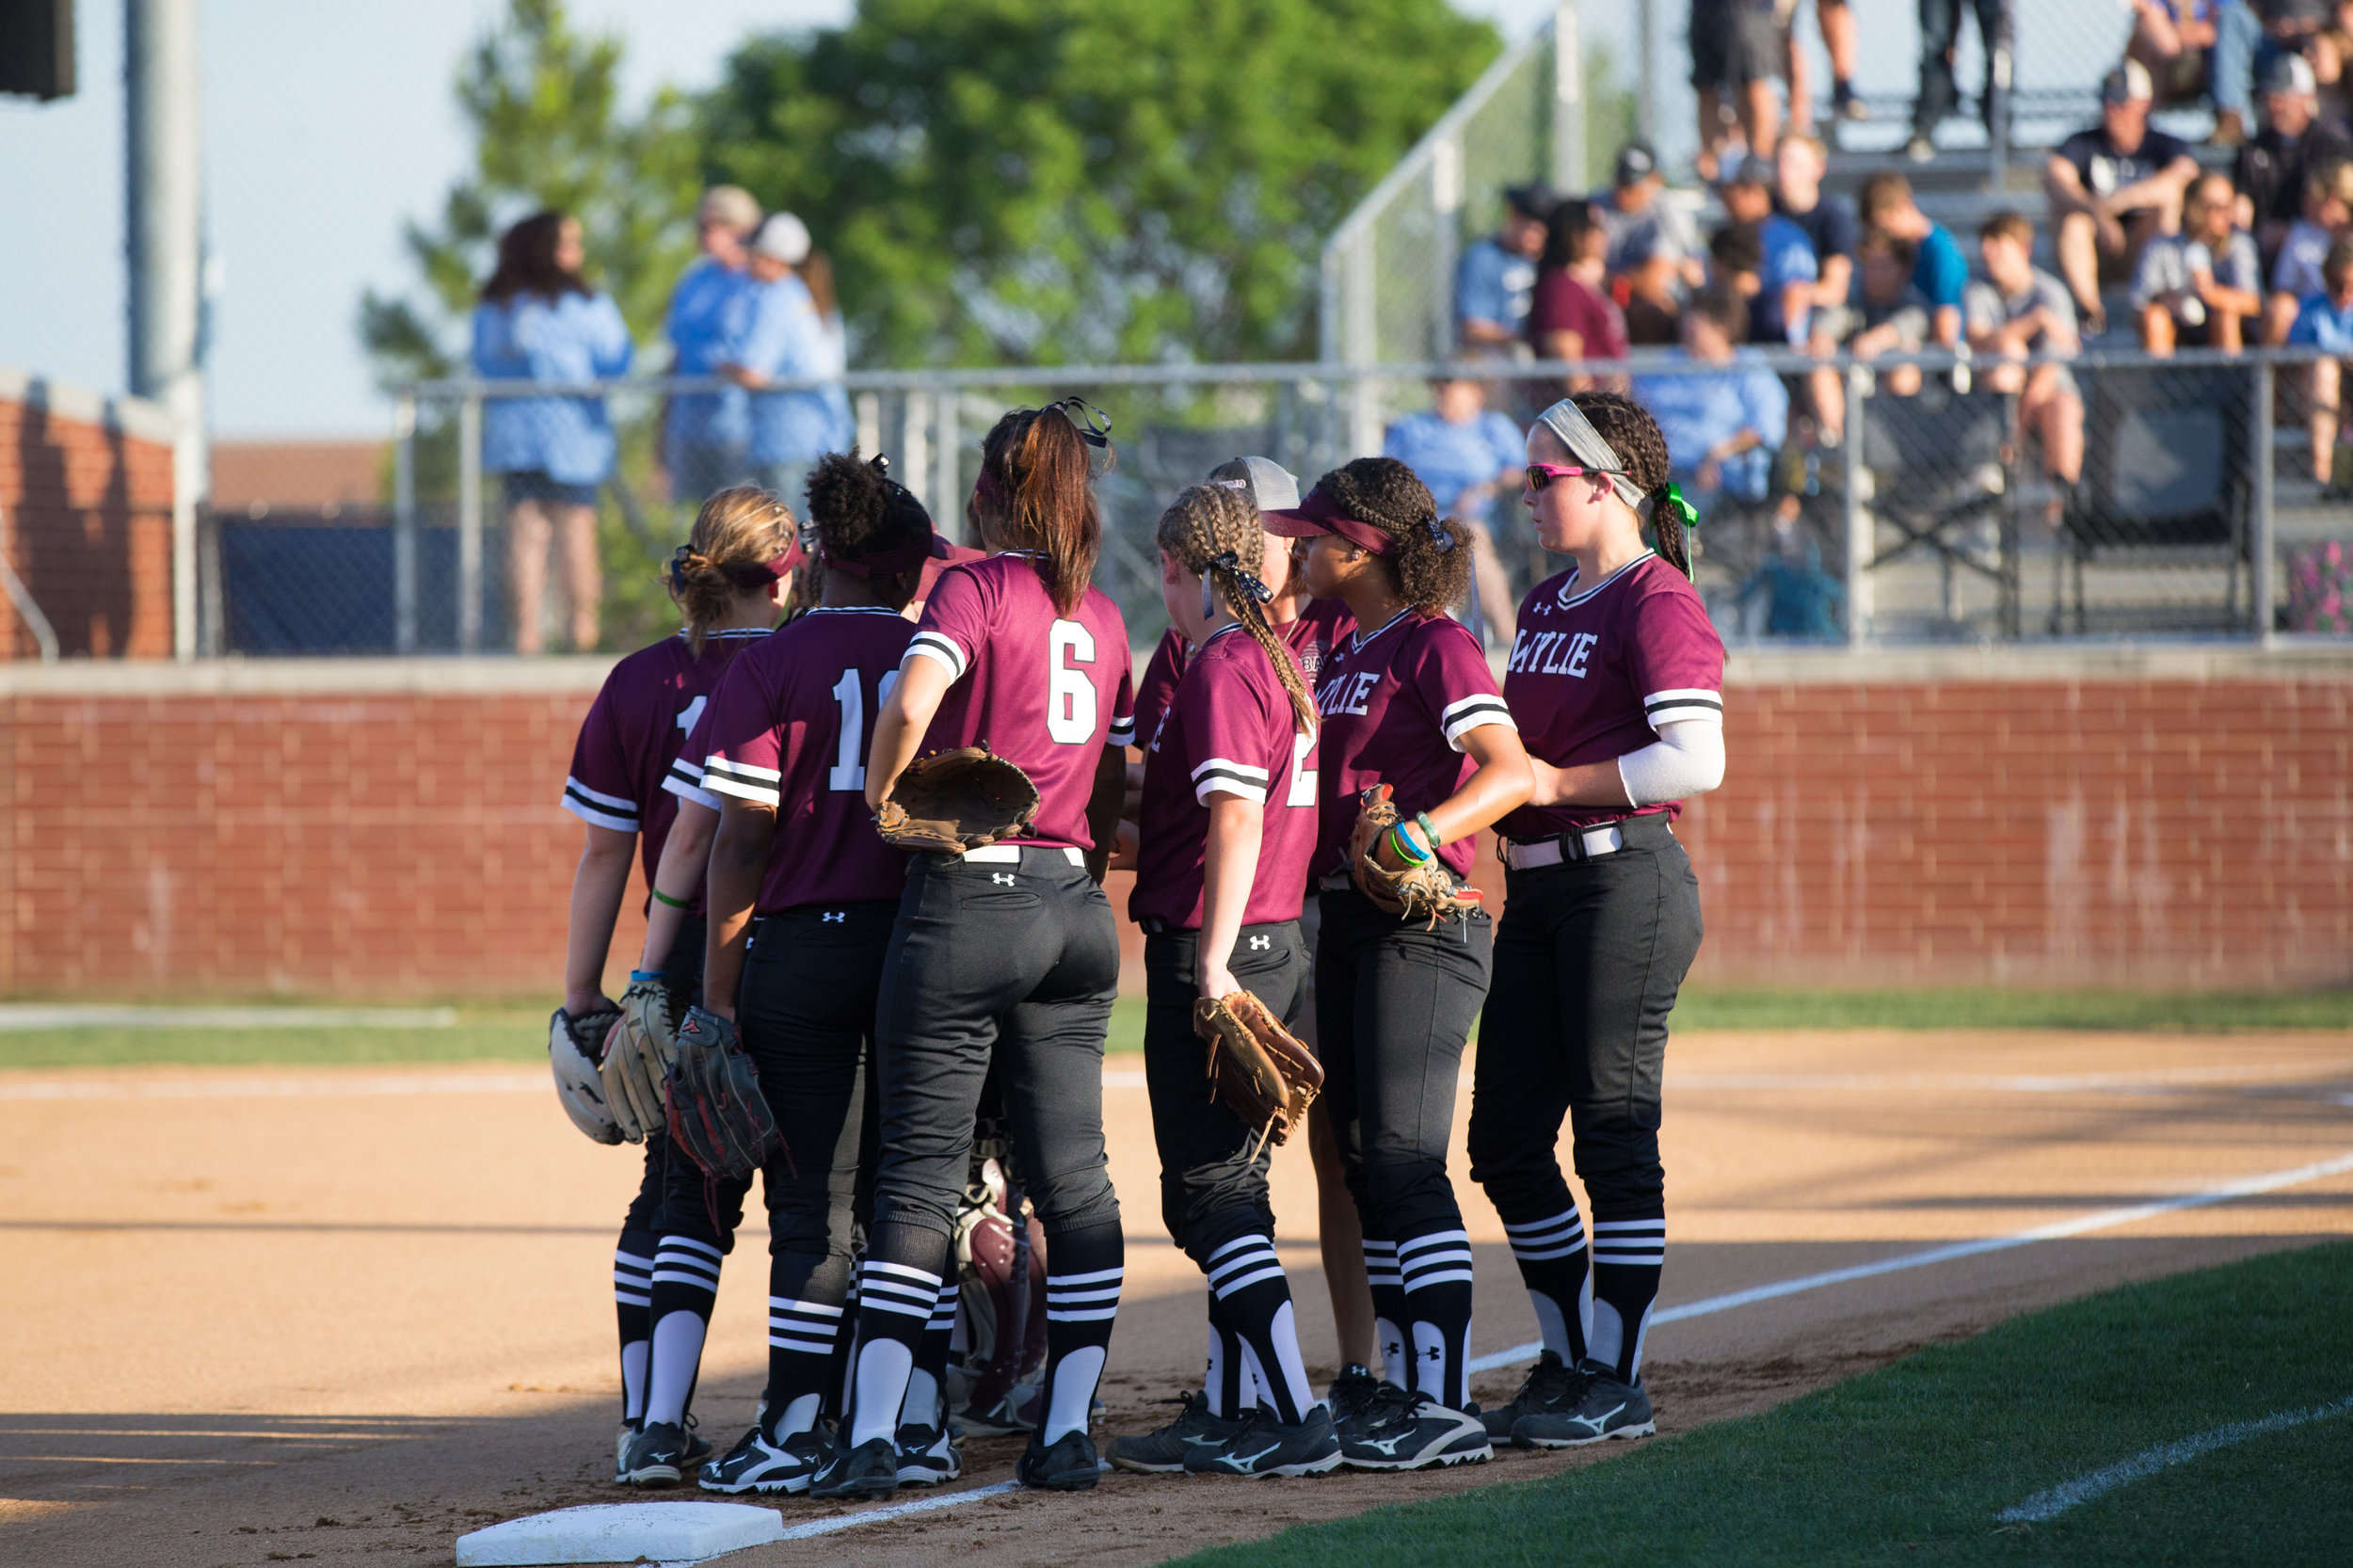 5_18 Wylie Softball-115.jpg